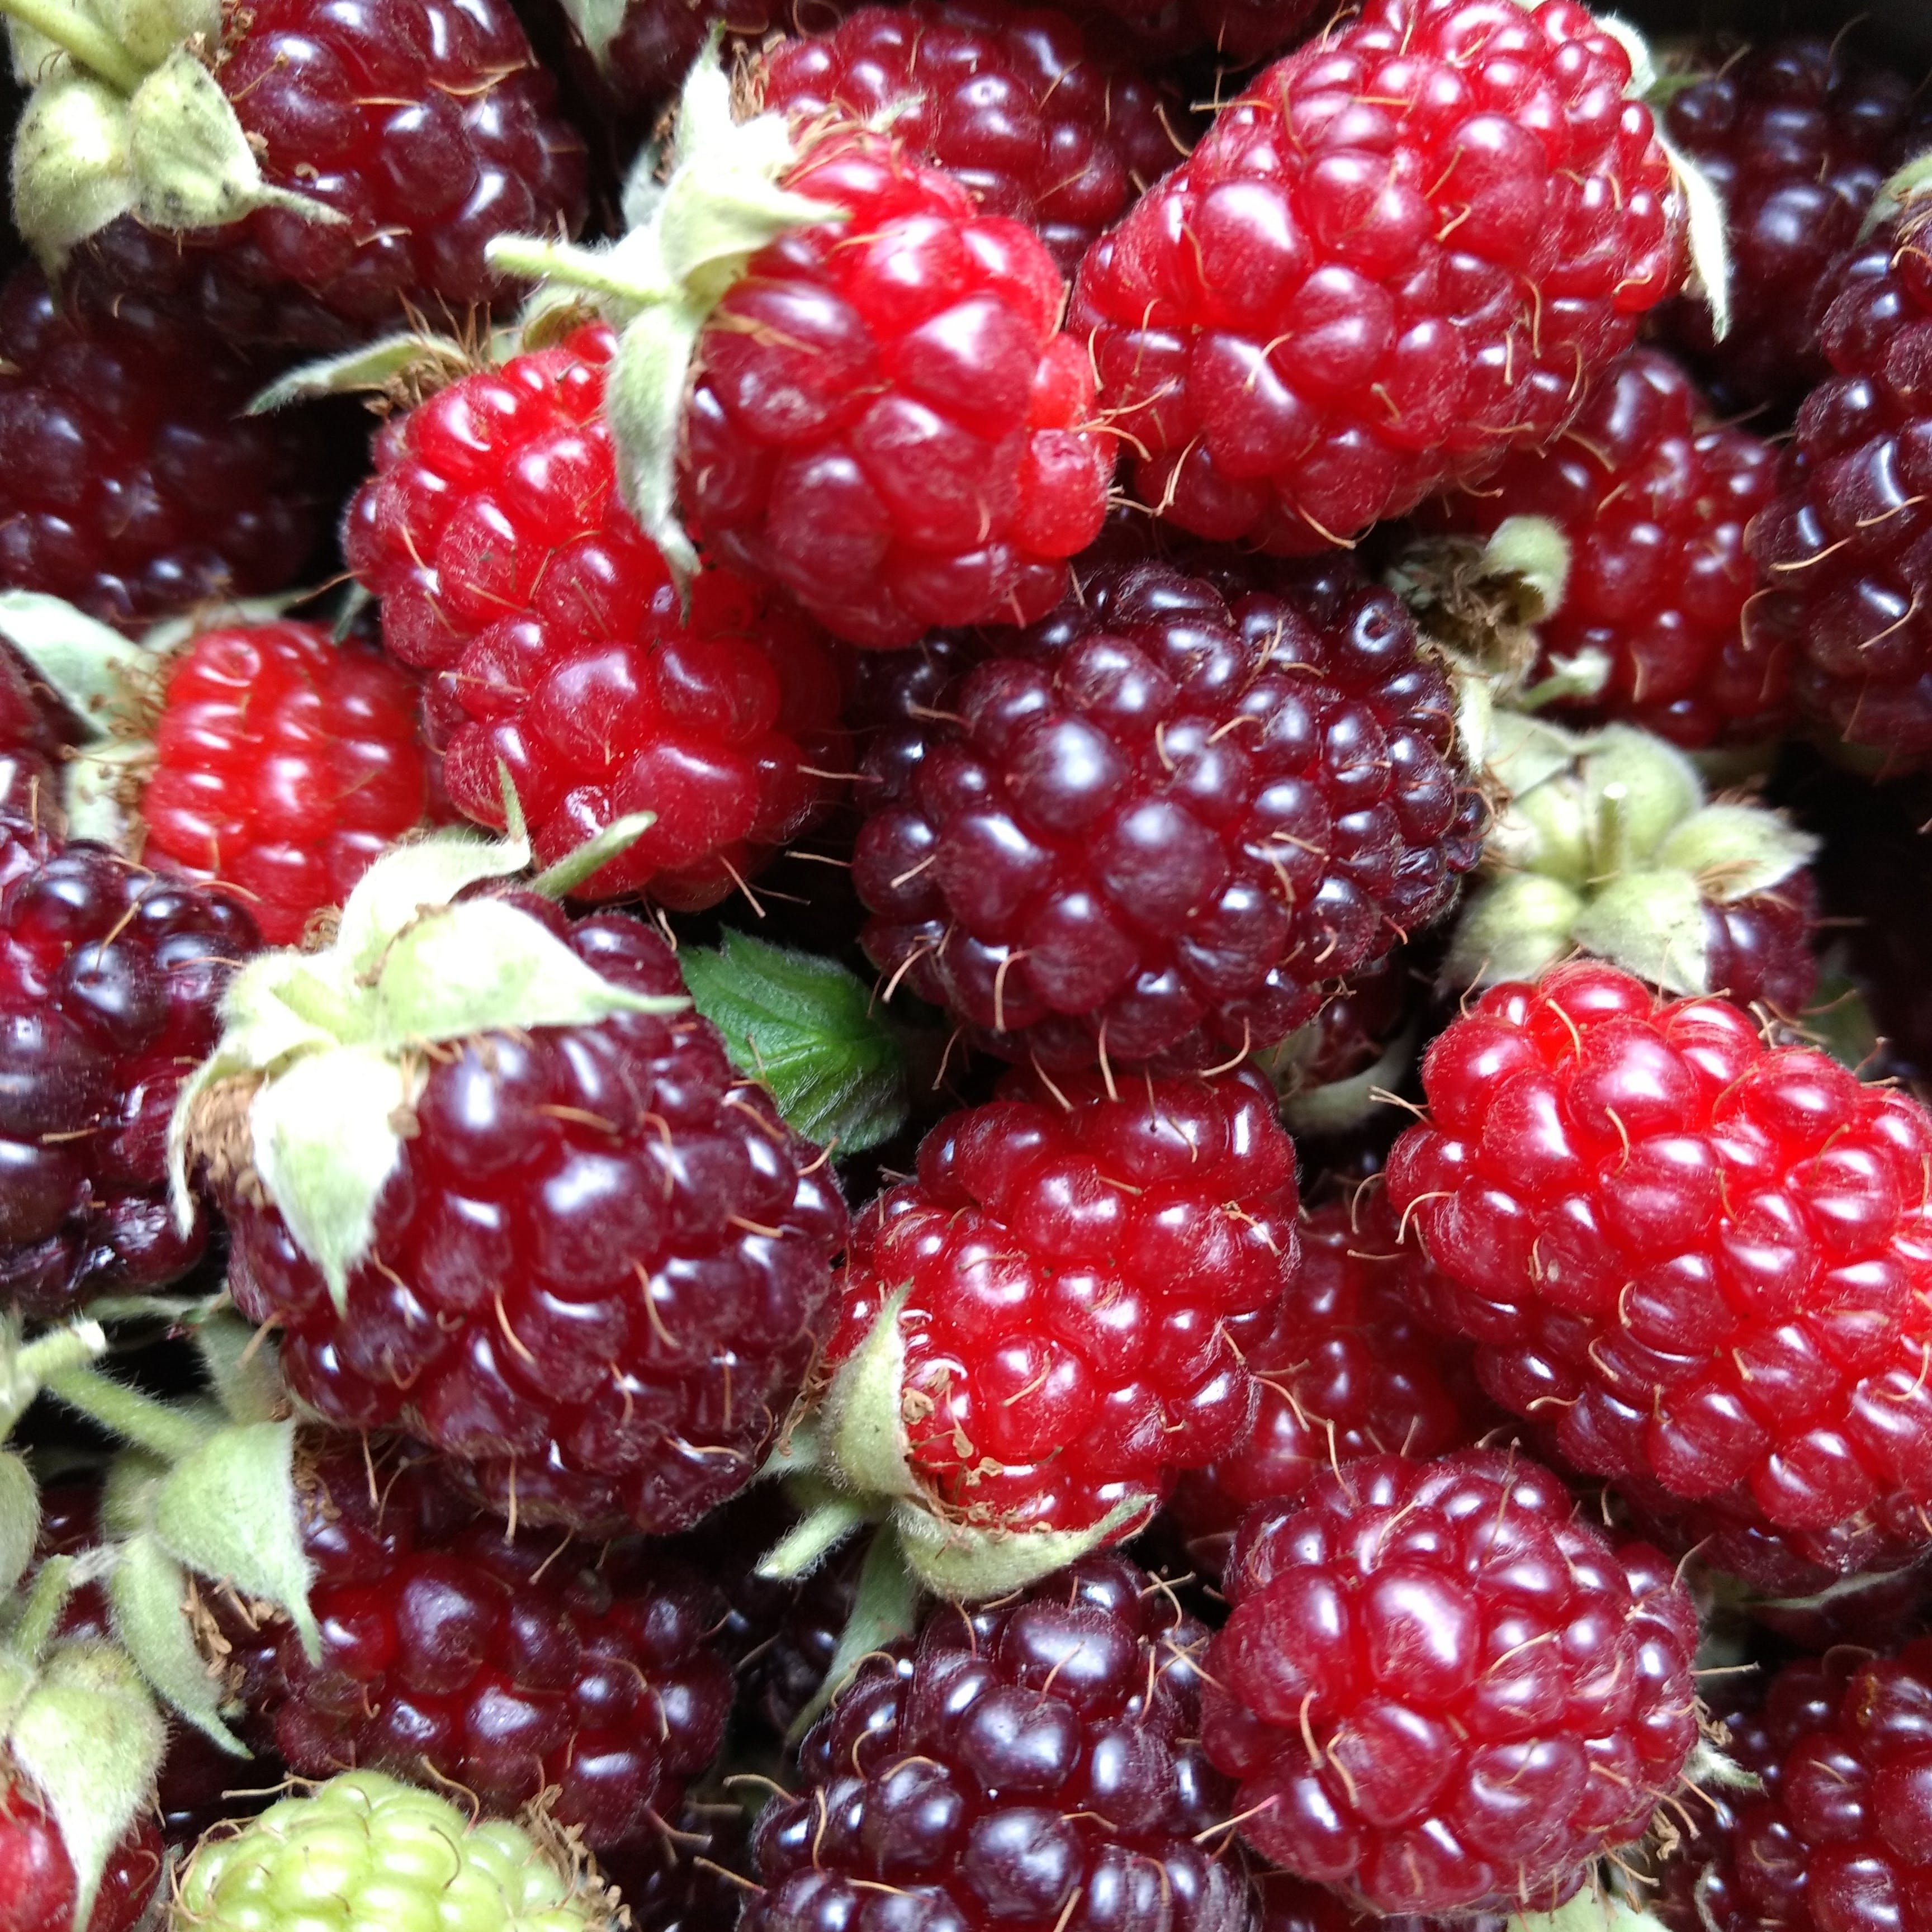 Free stock photo of #strawberries #red